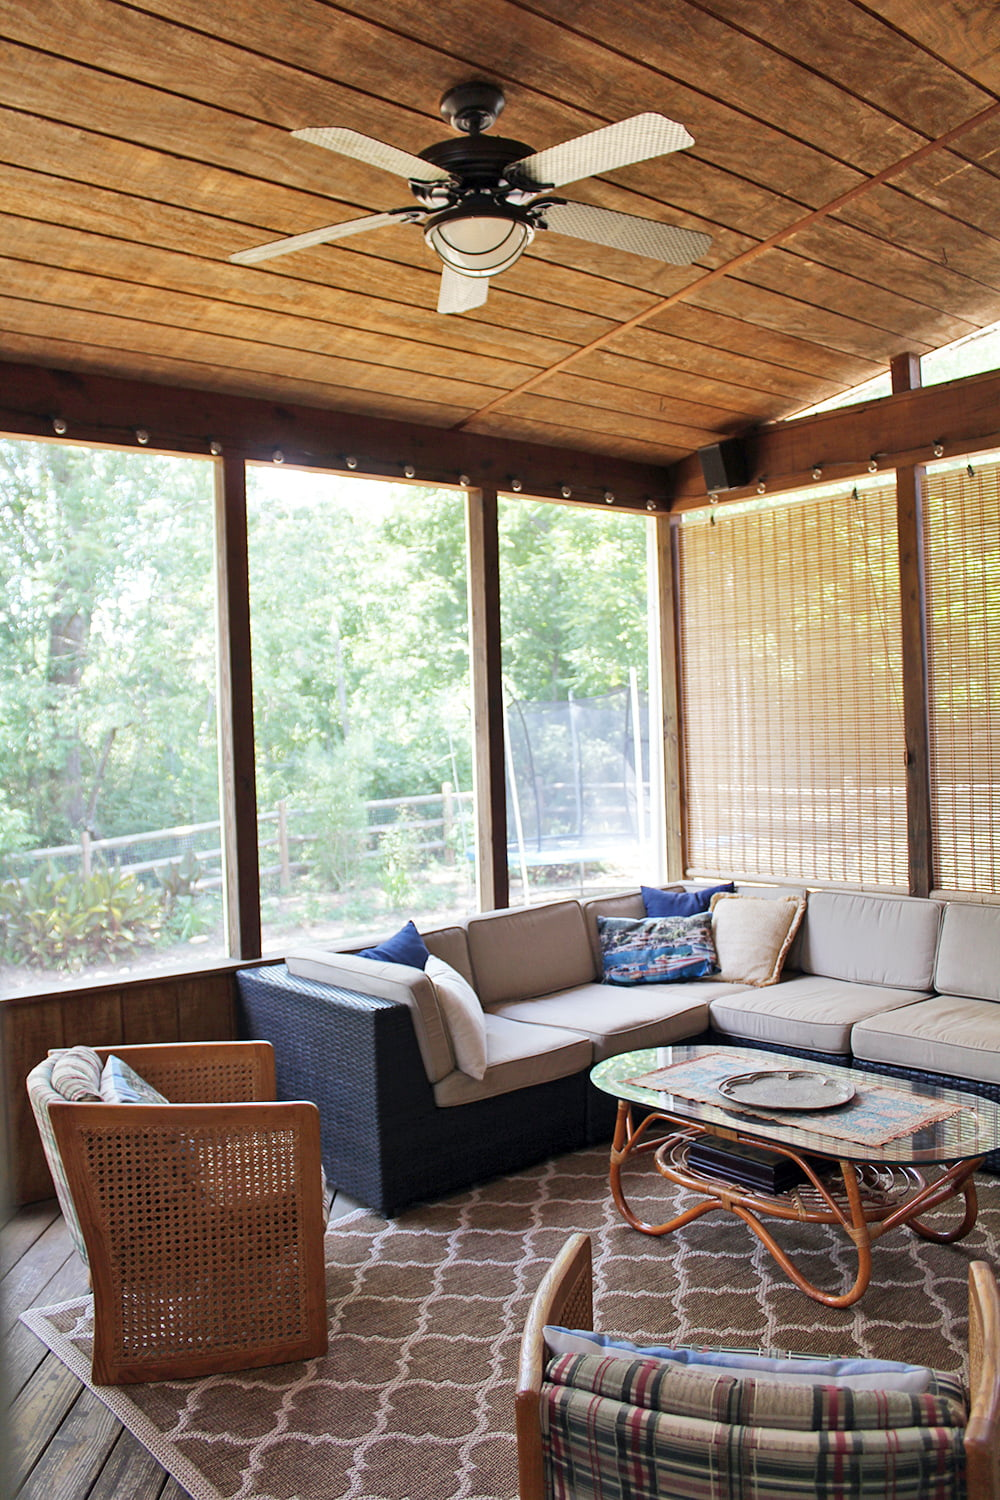 10 Screened In Porch Ideas — Tag & Tibby Design on Covered Back Porch Ideas id=72084